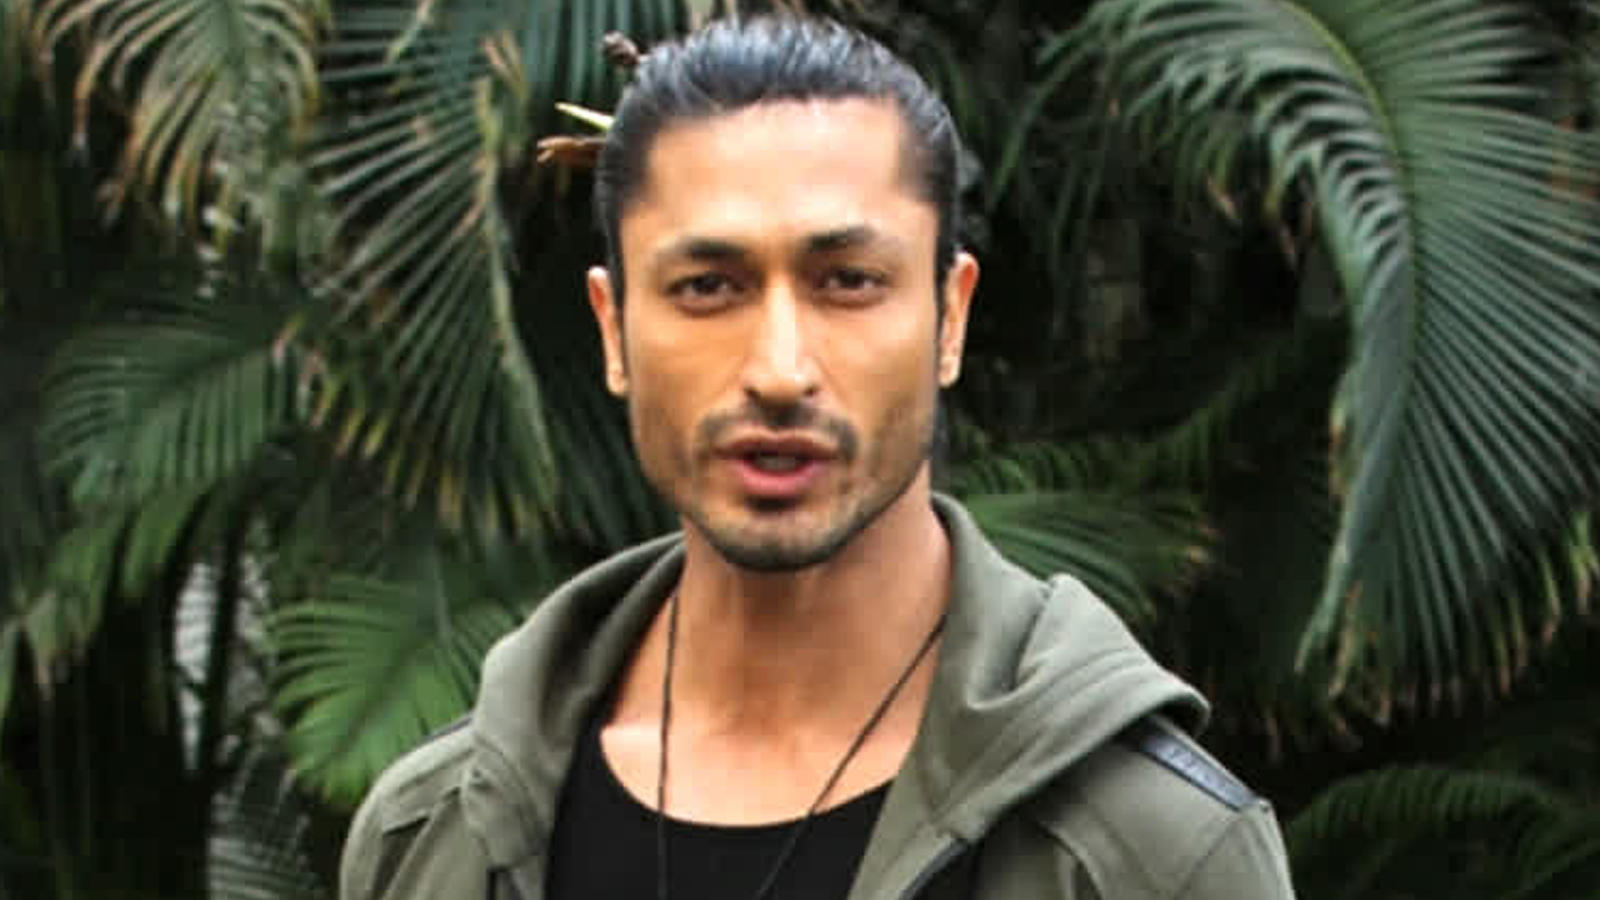 vidyut-jammwal-working-in-your-series-gives-different-pleasure